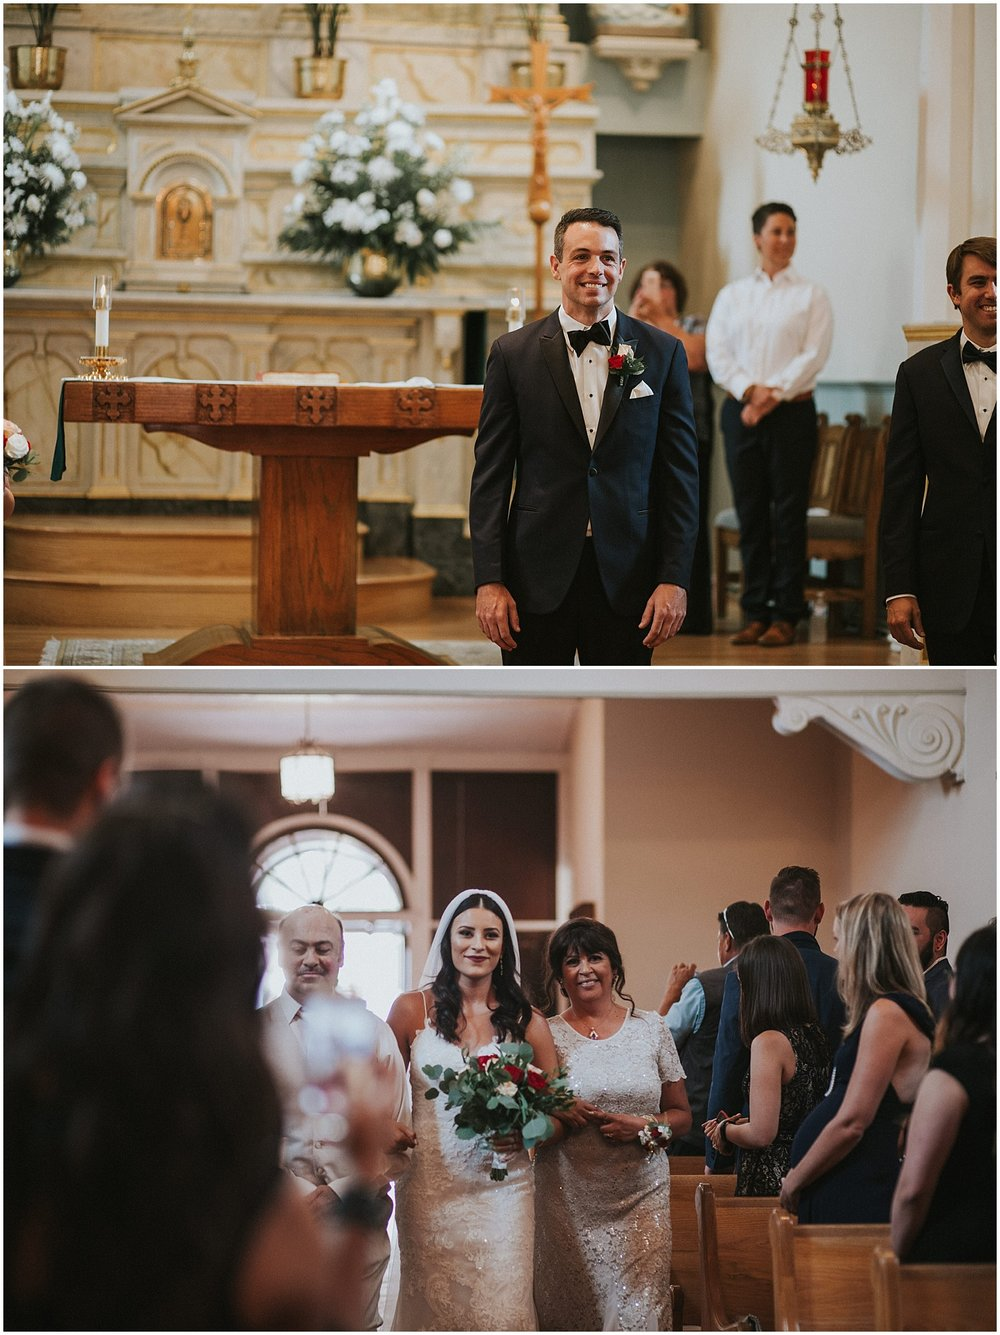 jade-and-steve-sandia-casino-wedding-albuquerque-photographer_0019.jpg